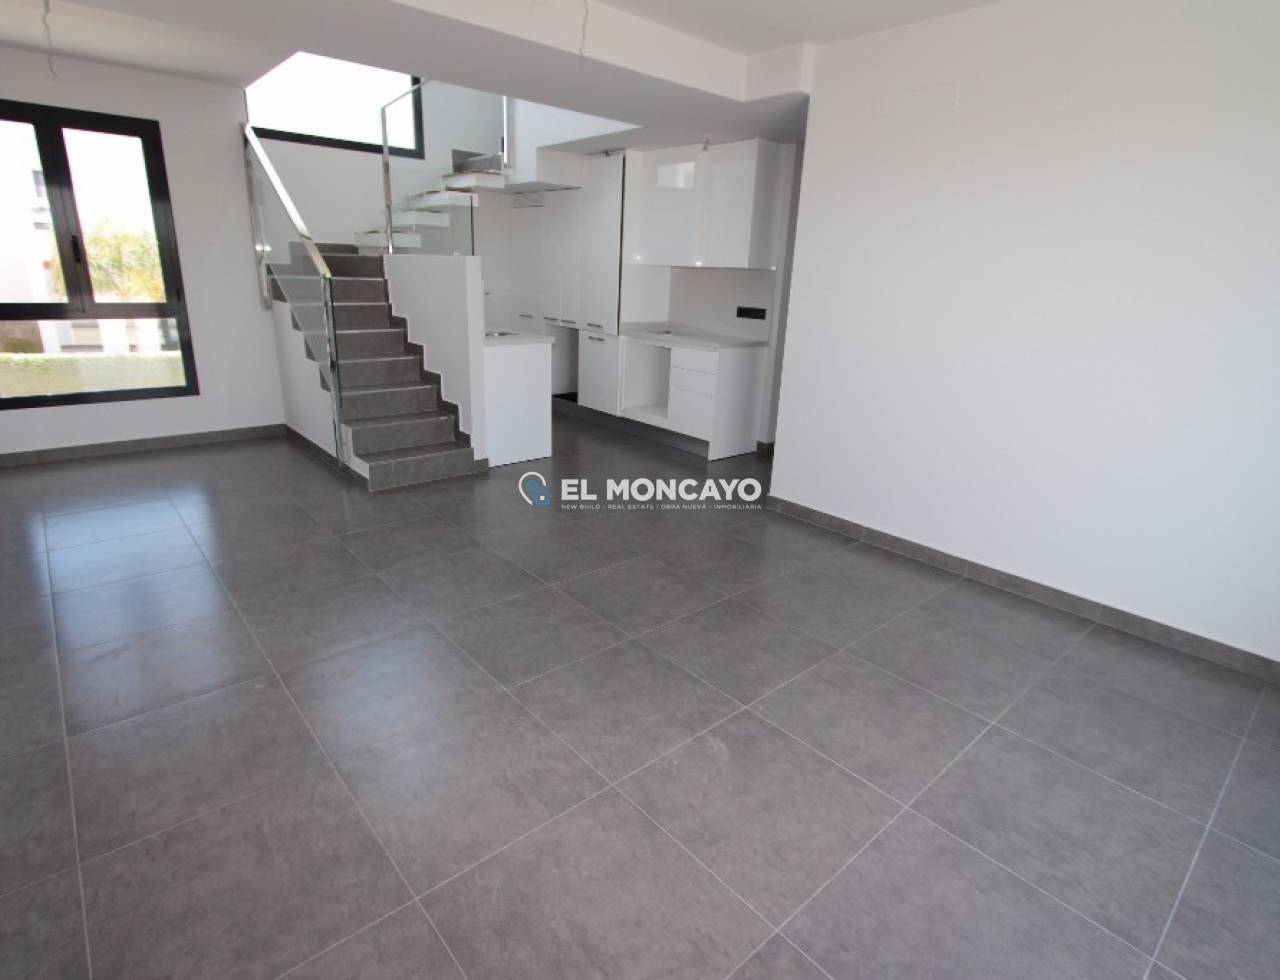 Penthouse duplex in Villamartín - Orihuela Costa (Costa Blanca South) 119 (8)